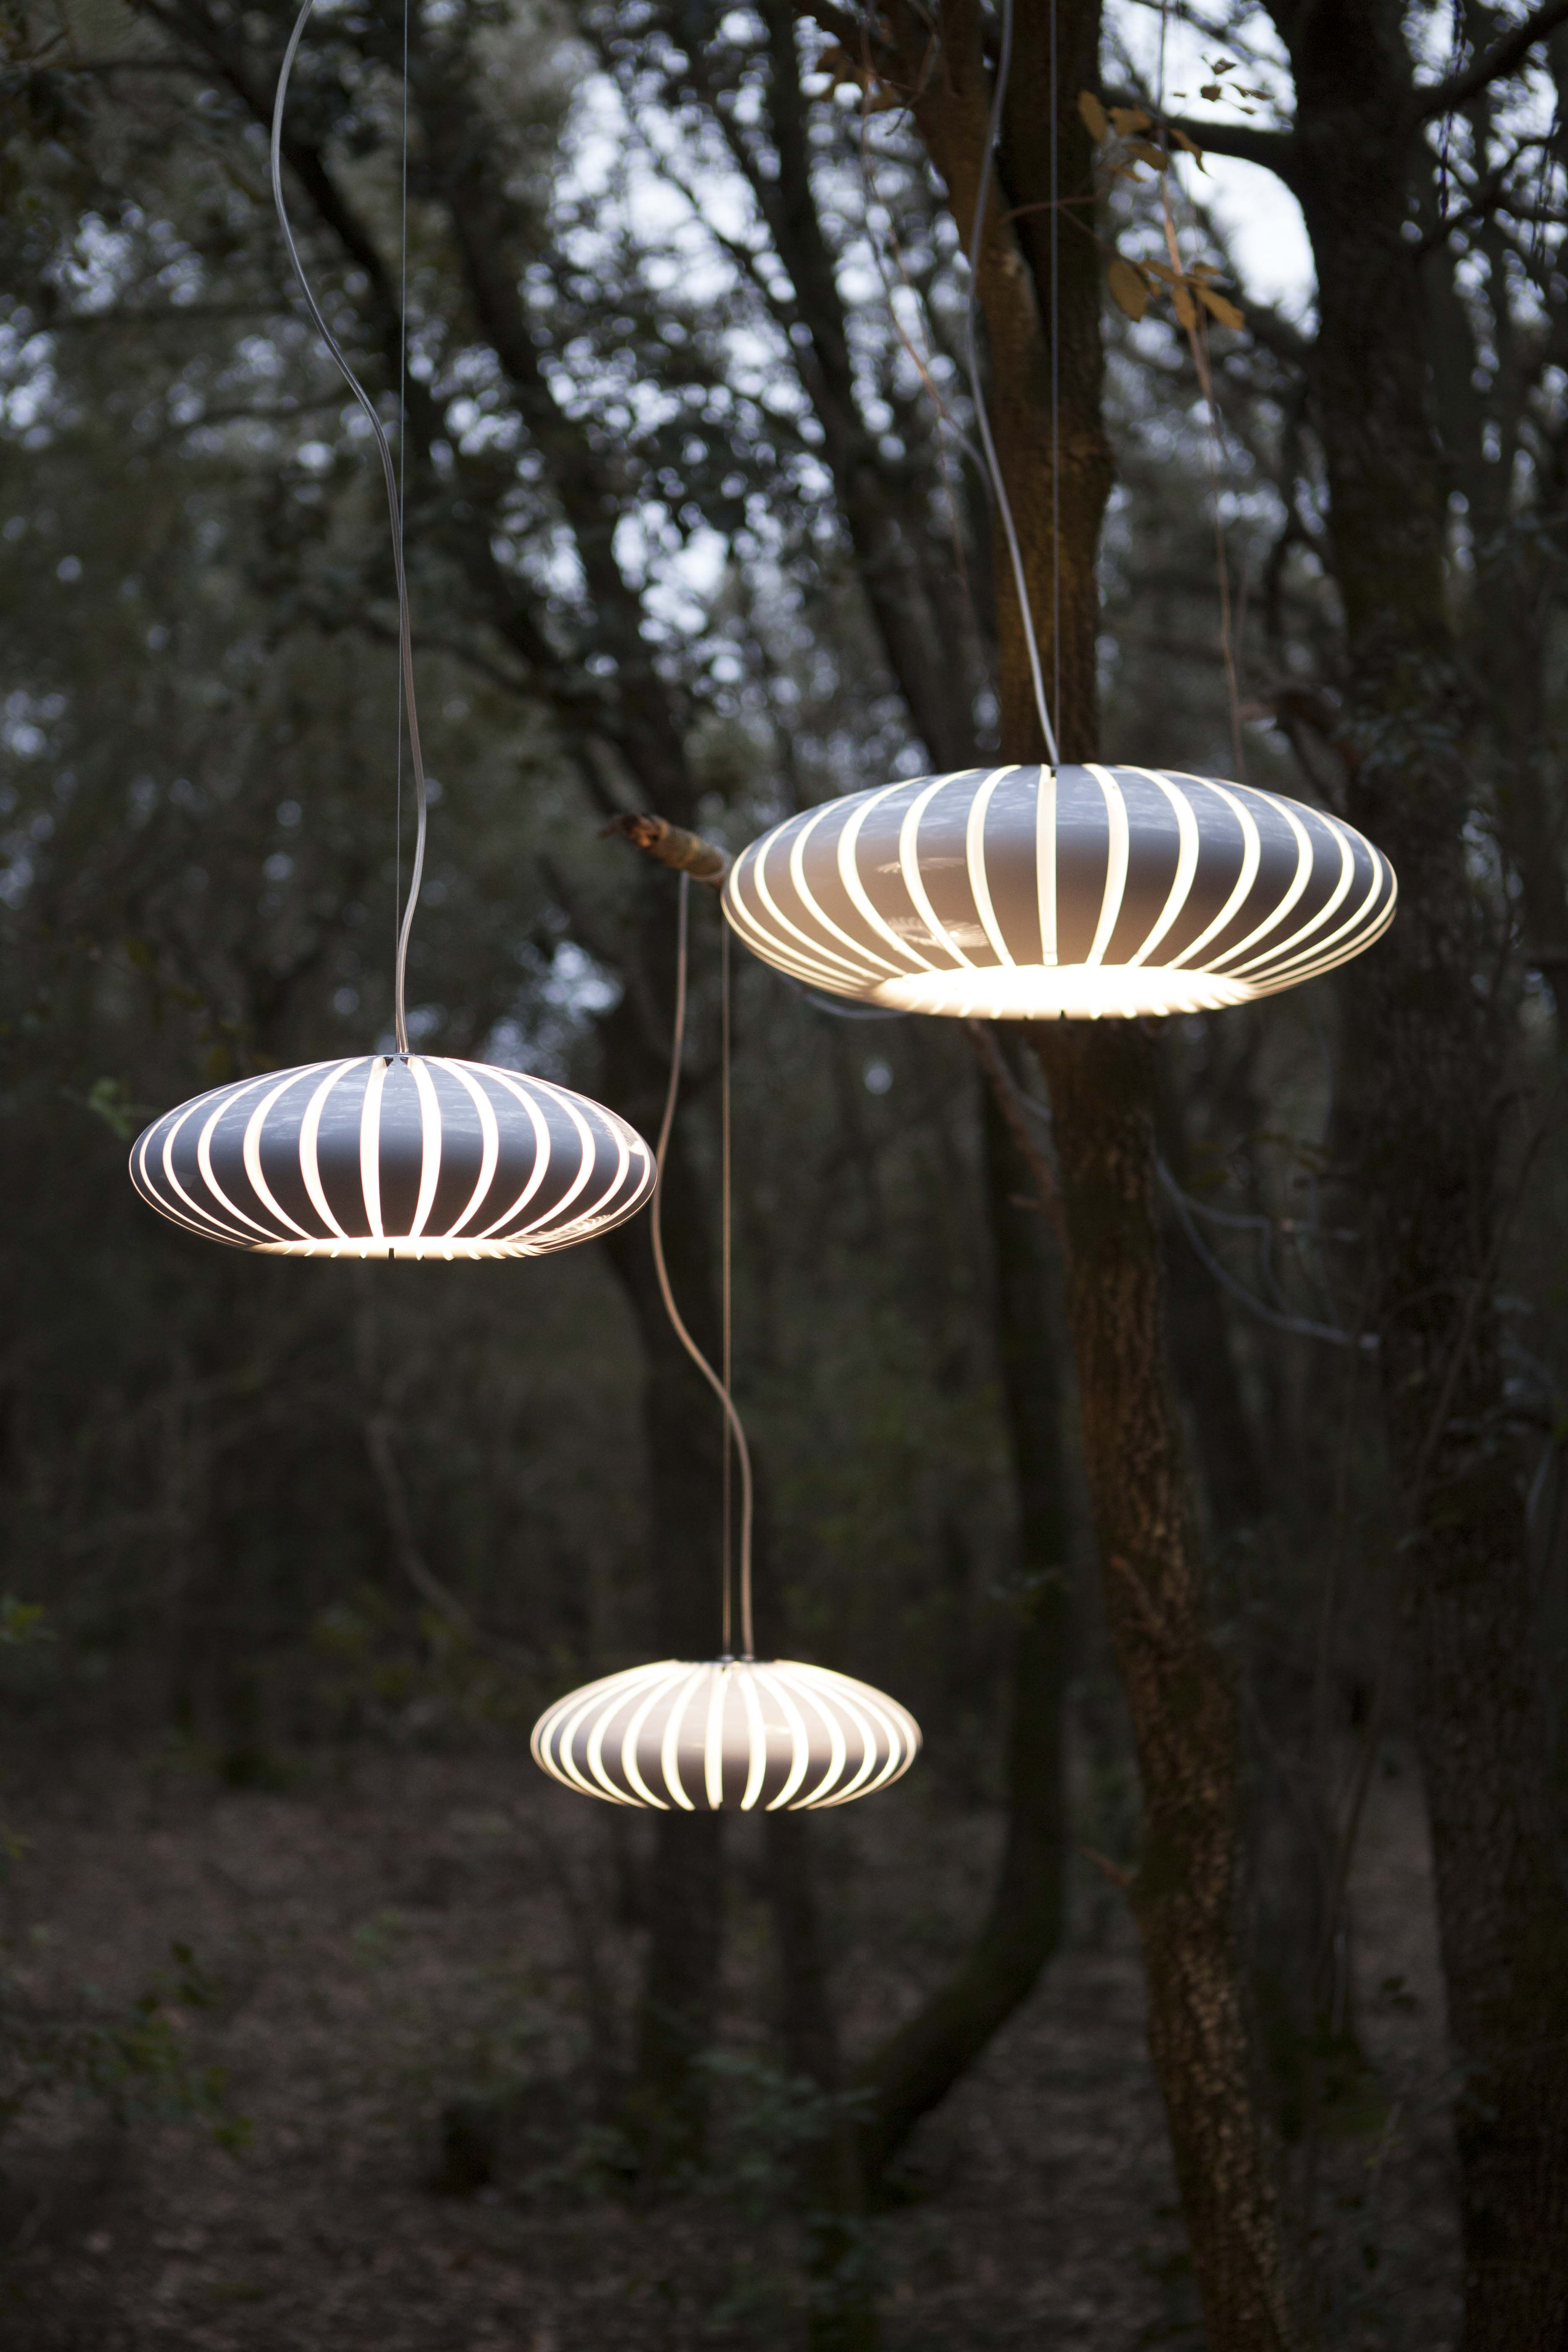 The Designed Are Lamps Suspension Maranga Christophe These By VSqMGUzp